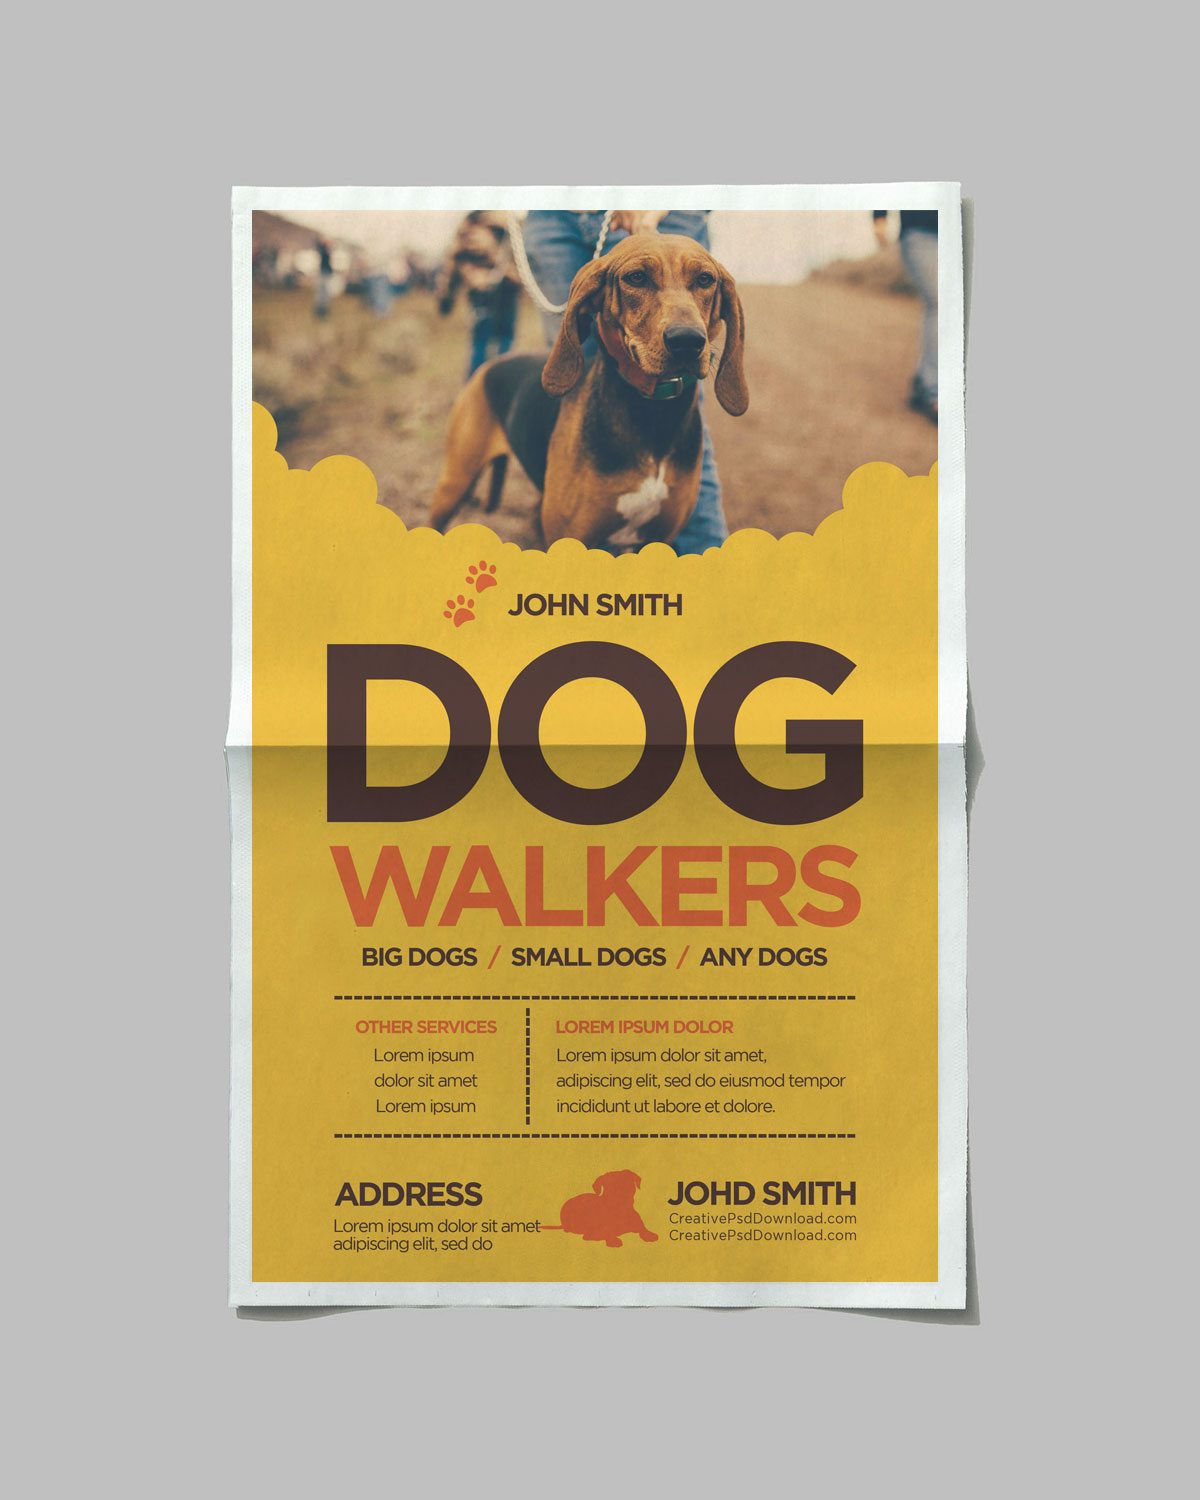 Creative Dog Walkers Flyer Showcase 4